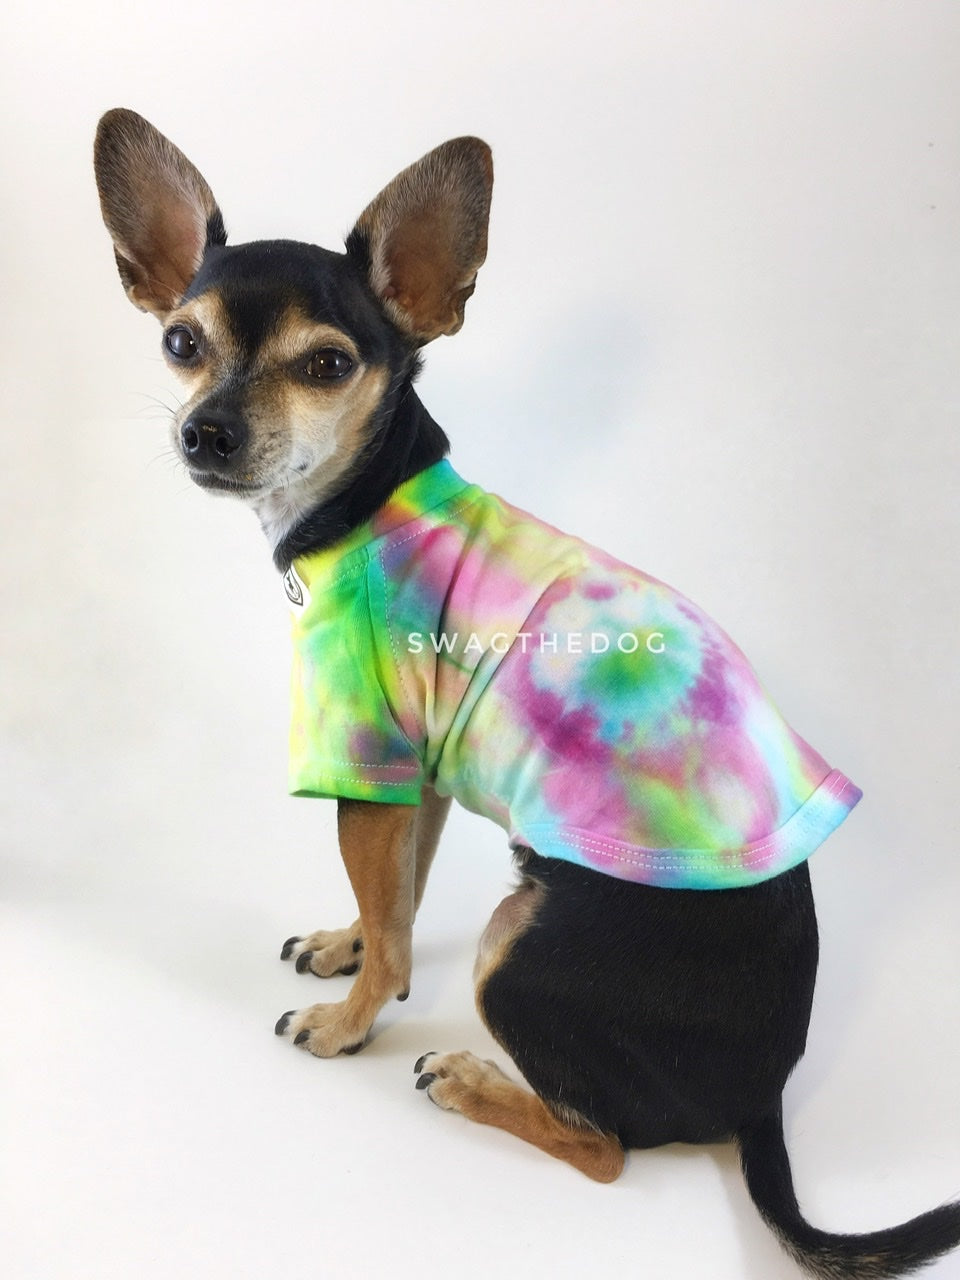 Swagadelic Hipster Tie Dye Tee - Cute Chihuahua named Hugo in sitting position with his back towards the camera and looking back, wearing the hand tie-dyed tee with Pink, Yellow and Sky Blue